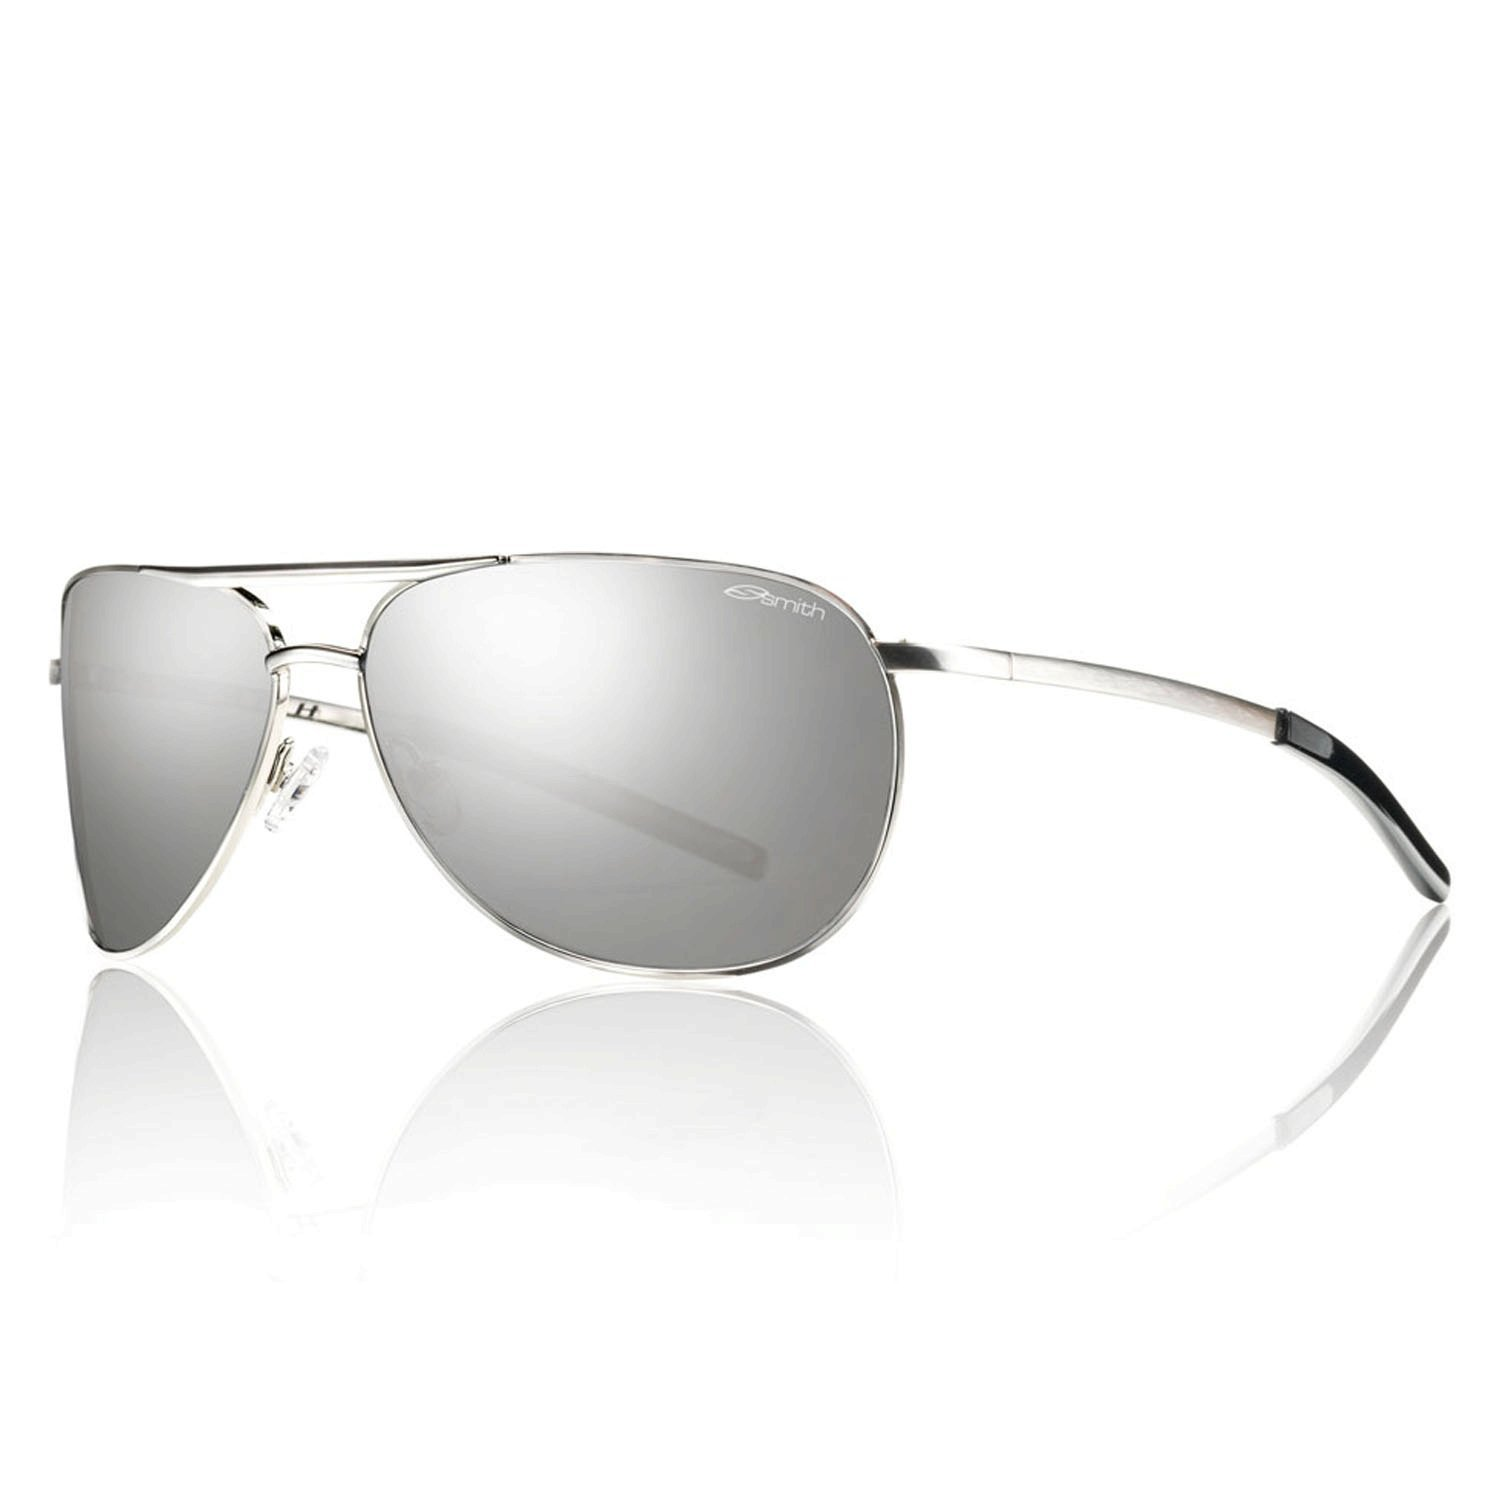 c26fb58d72a Buy Silver Platinum Mirror   Smith Optics Serpico Slim Sunglasses Online at  Low Prices in India - Amazon.in